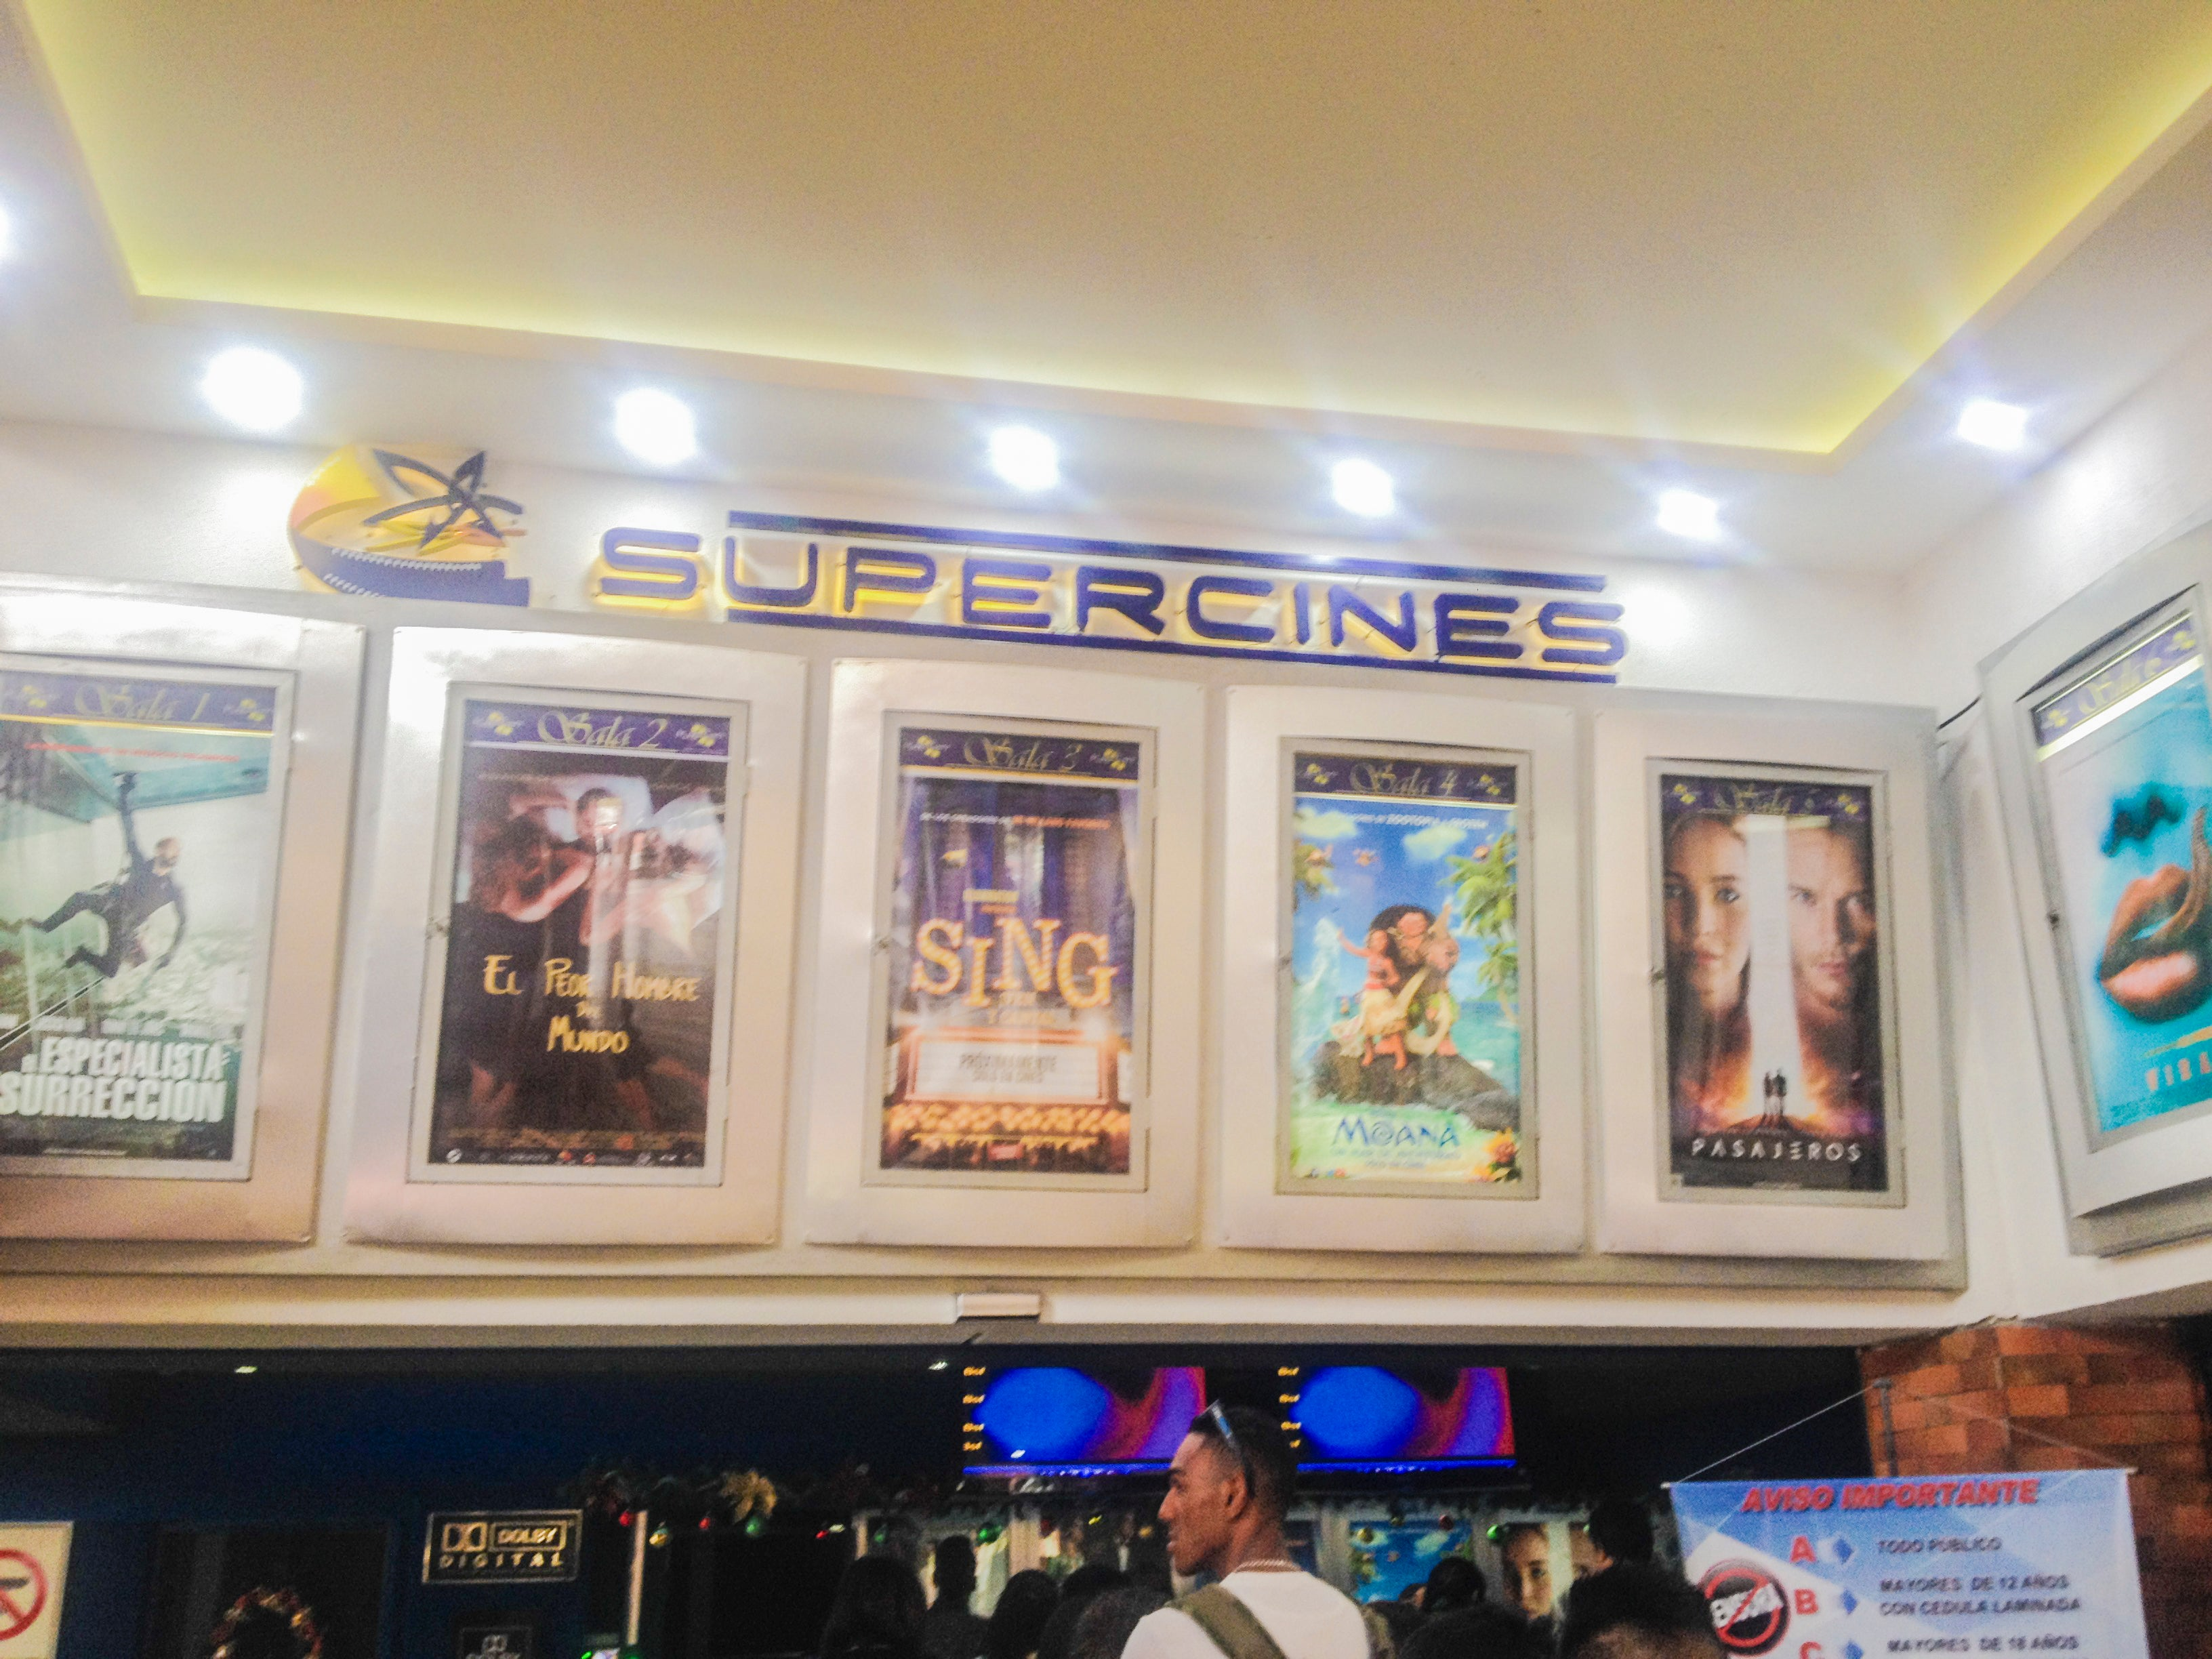 Super Cines La Cascada